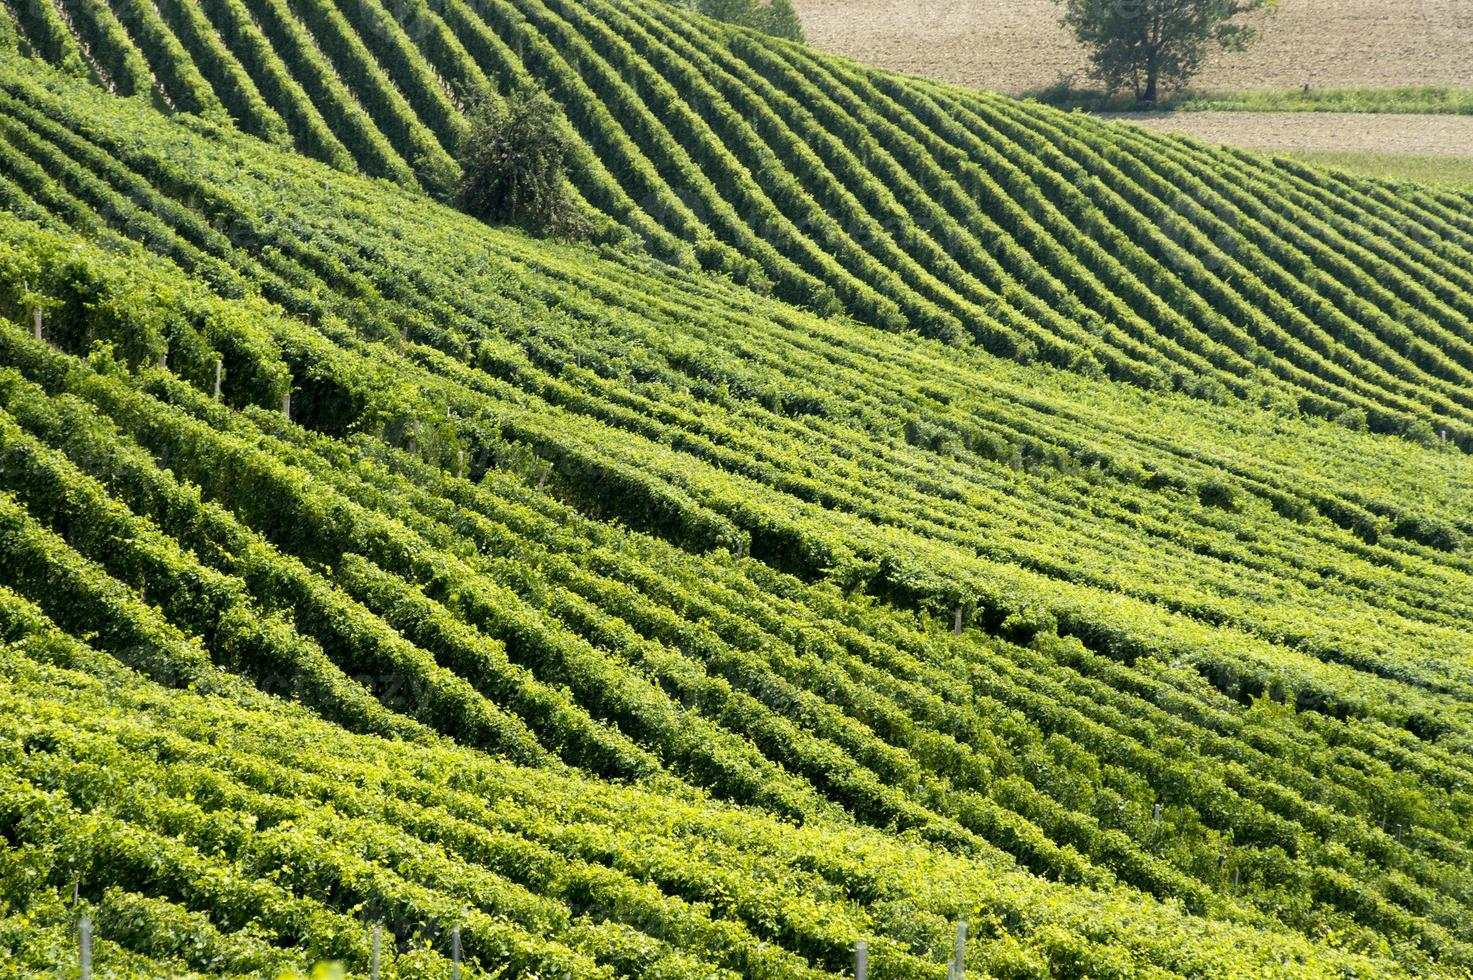 Hills with vineyards photo